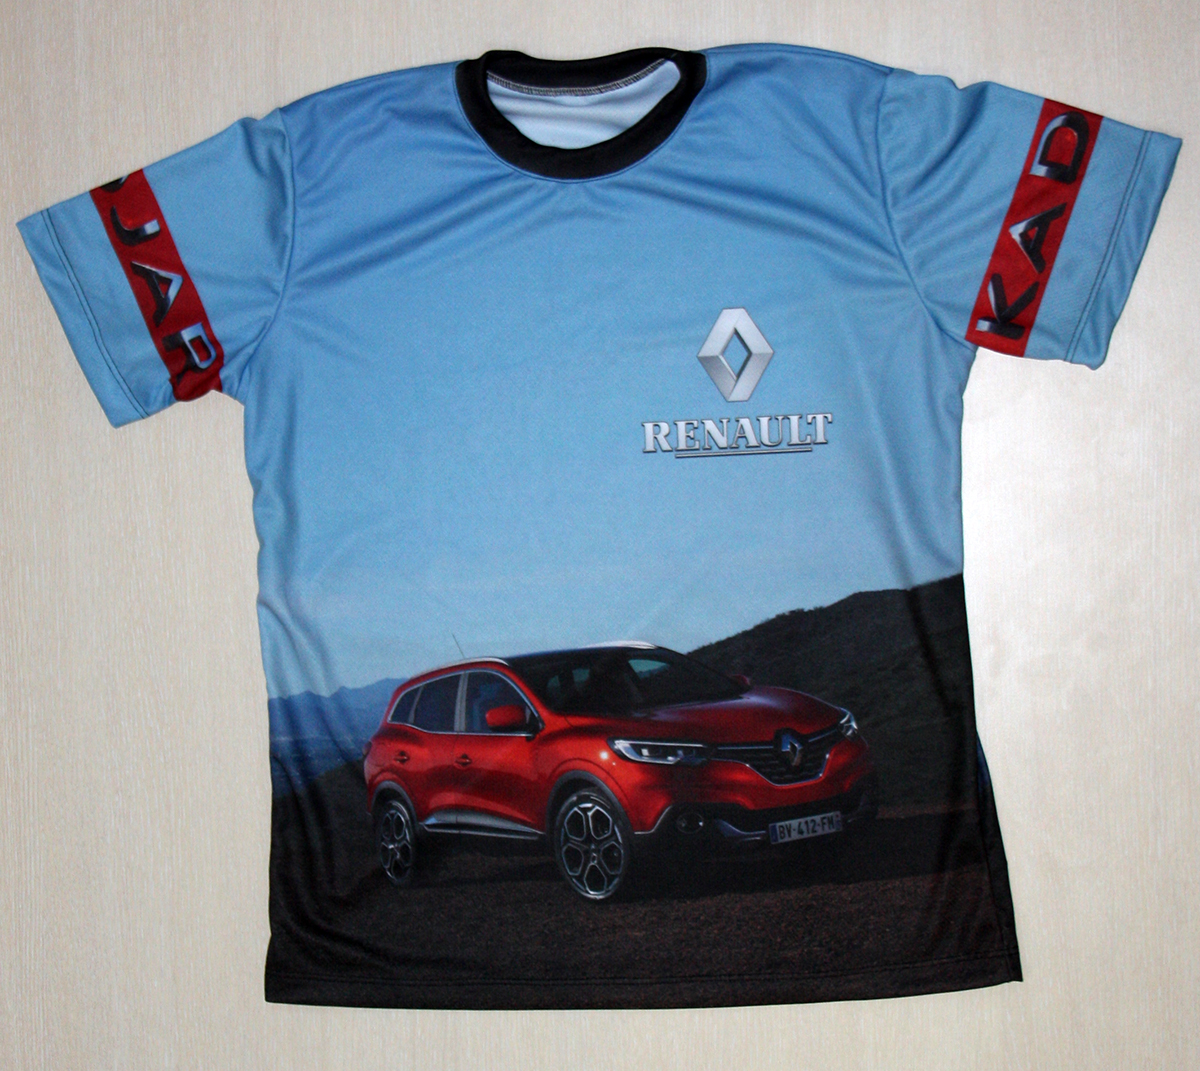 renault kadjar t shirt with logo and all over printed picture t shirts with all kind of auto. Black Bedroom Furniture Sets. Home Design Ideas